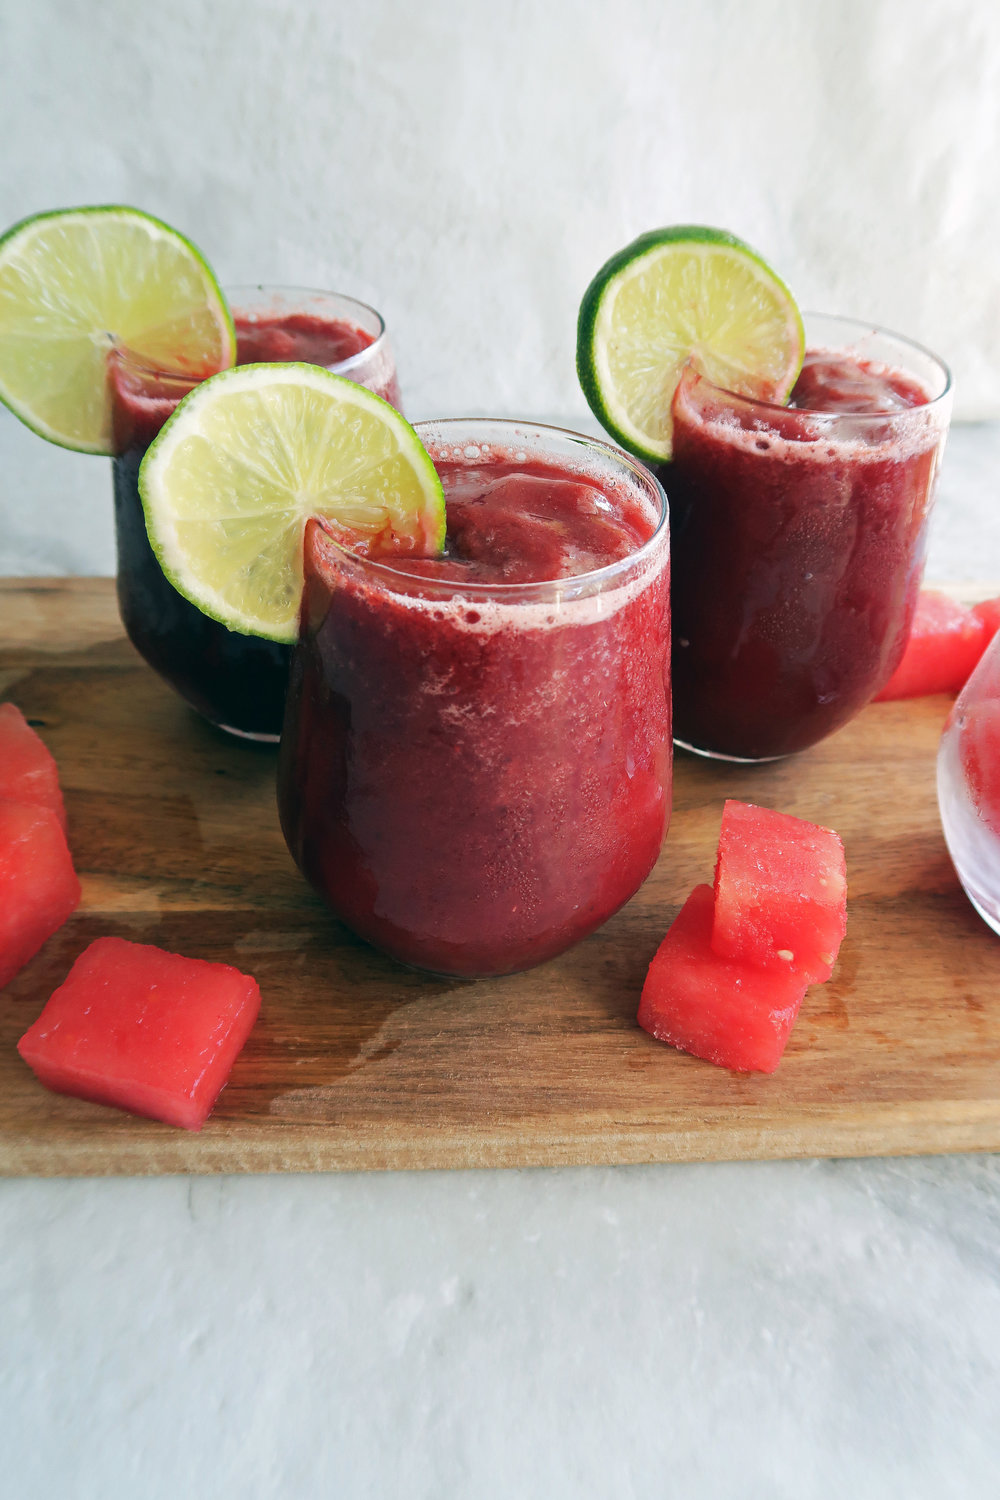 Three 4-Ingredient Watermelon Cherry Slushies in glasses, a lime slice on each glass rim, with watermelon cubes around it.